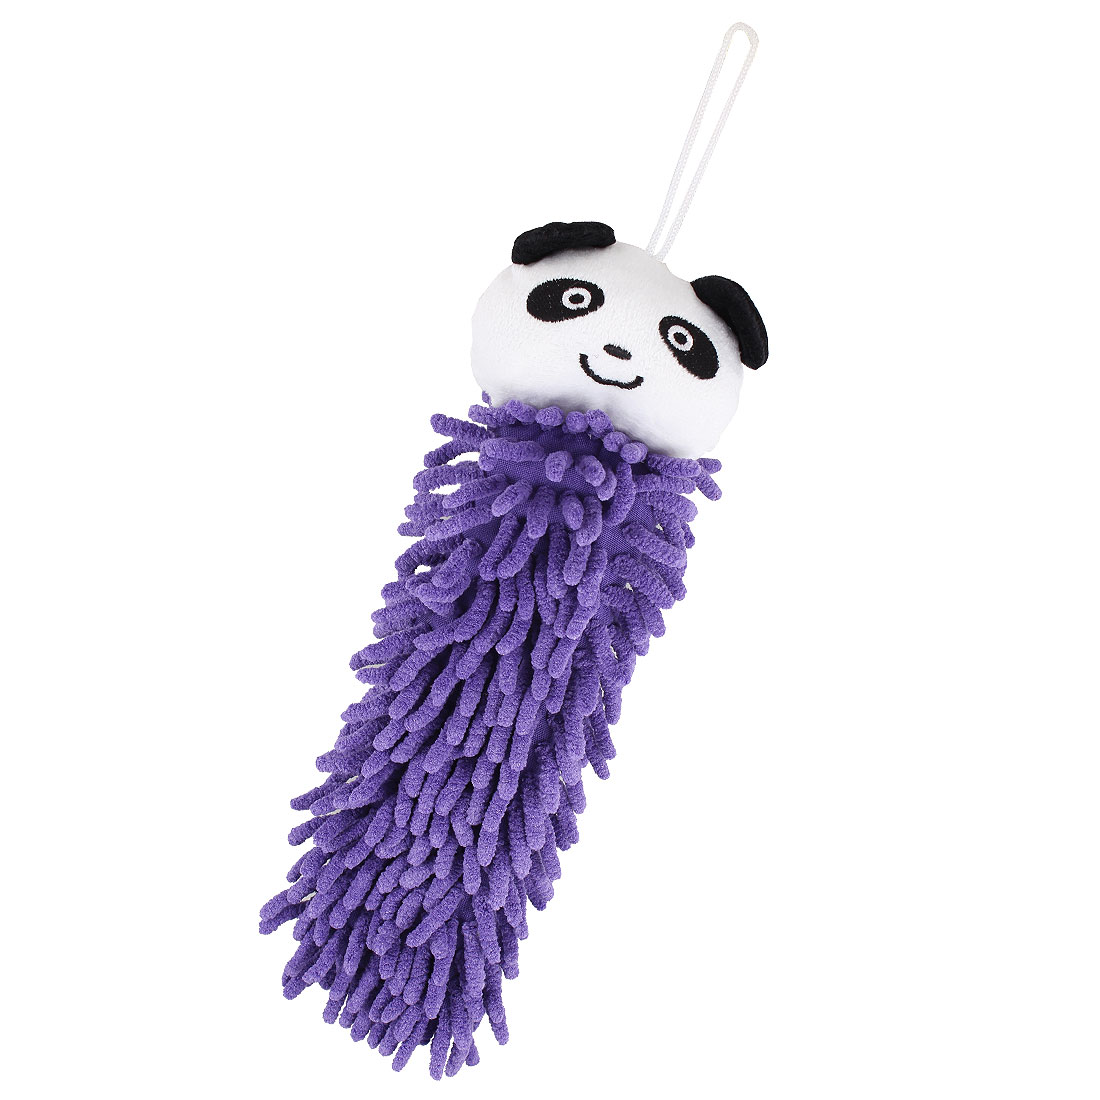 Bathroom Kitchen Car Office Cartoon Panda Design Hand Washcloth Towel Purple